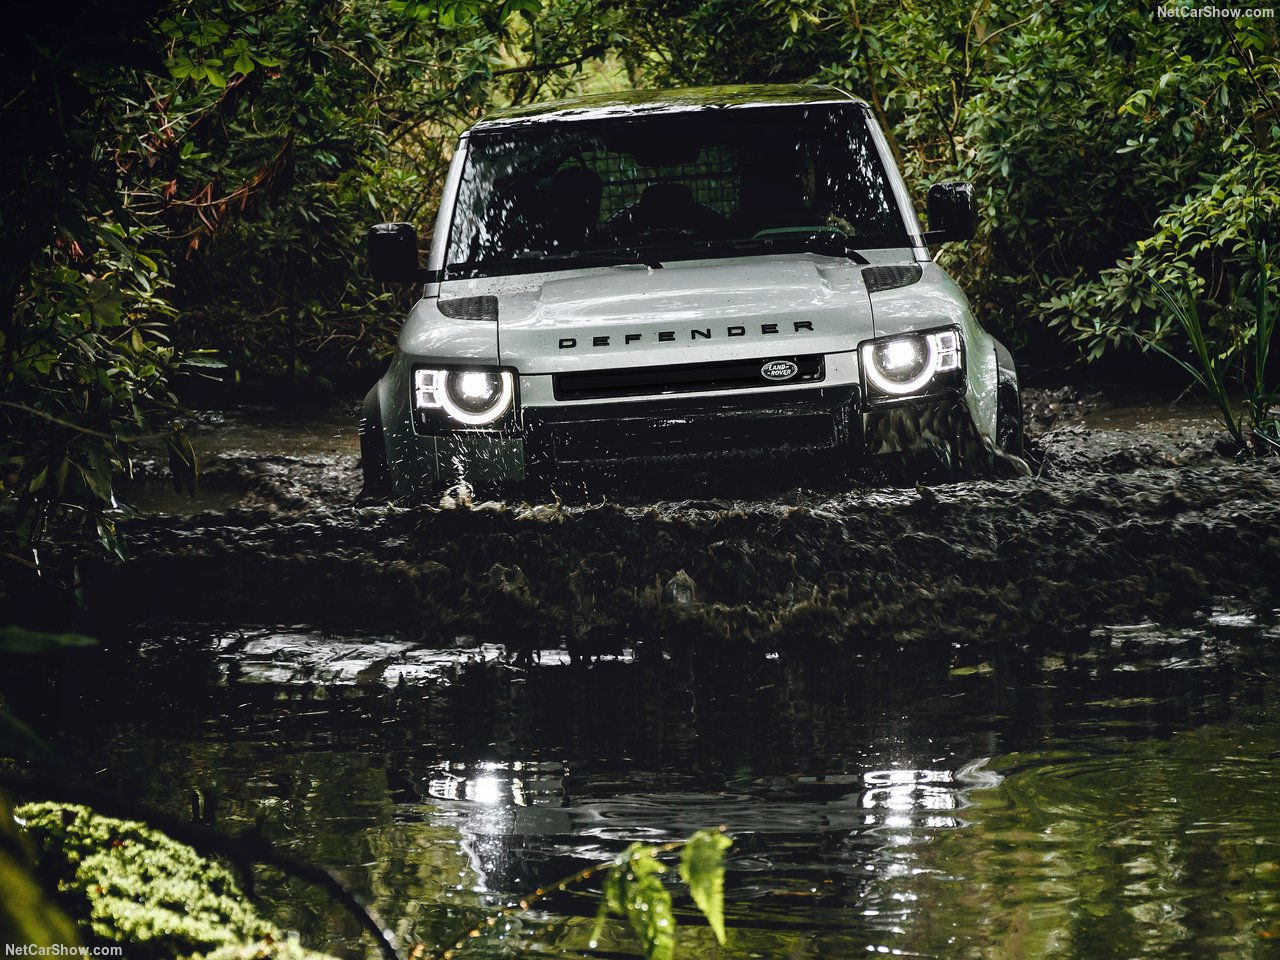 Land_Rover-Defender_110-2020-1280-5b.jpg